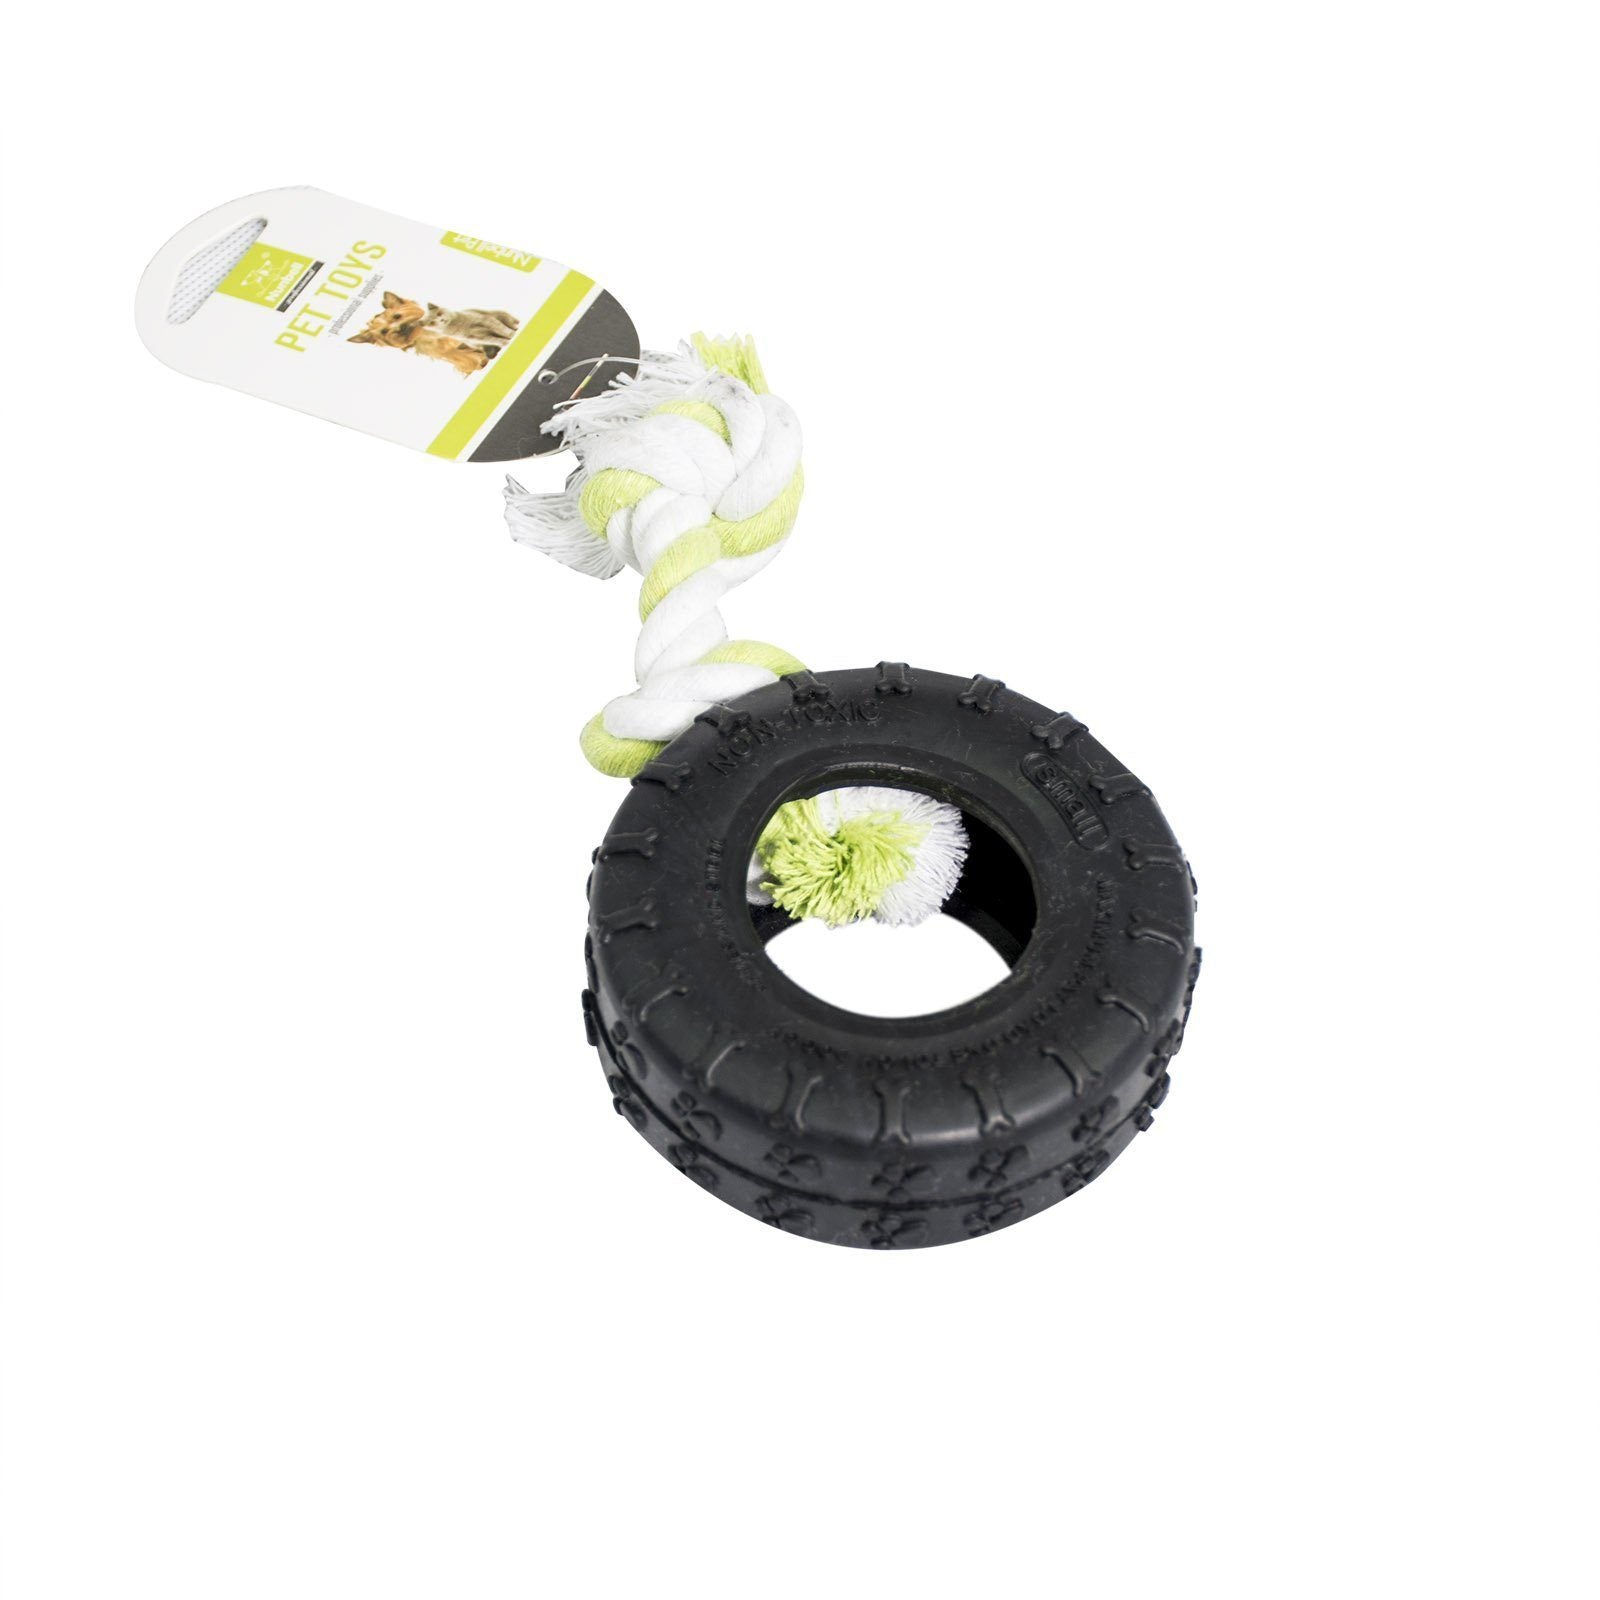 Pet Toys Plastic Wheel (Small) - HOUZE - The Homeware Superstore